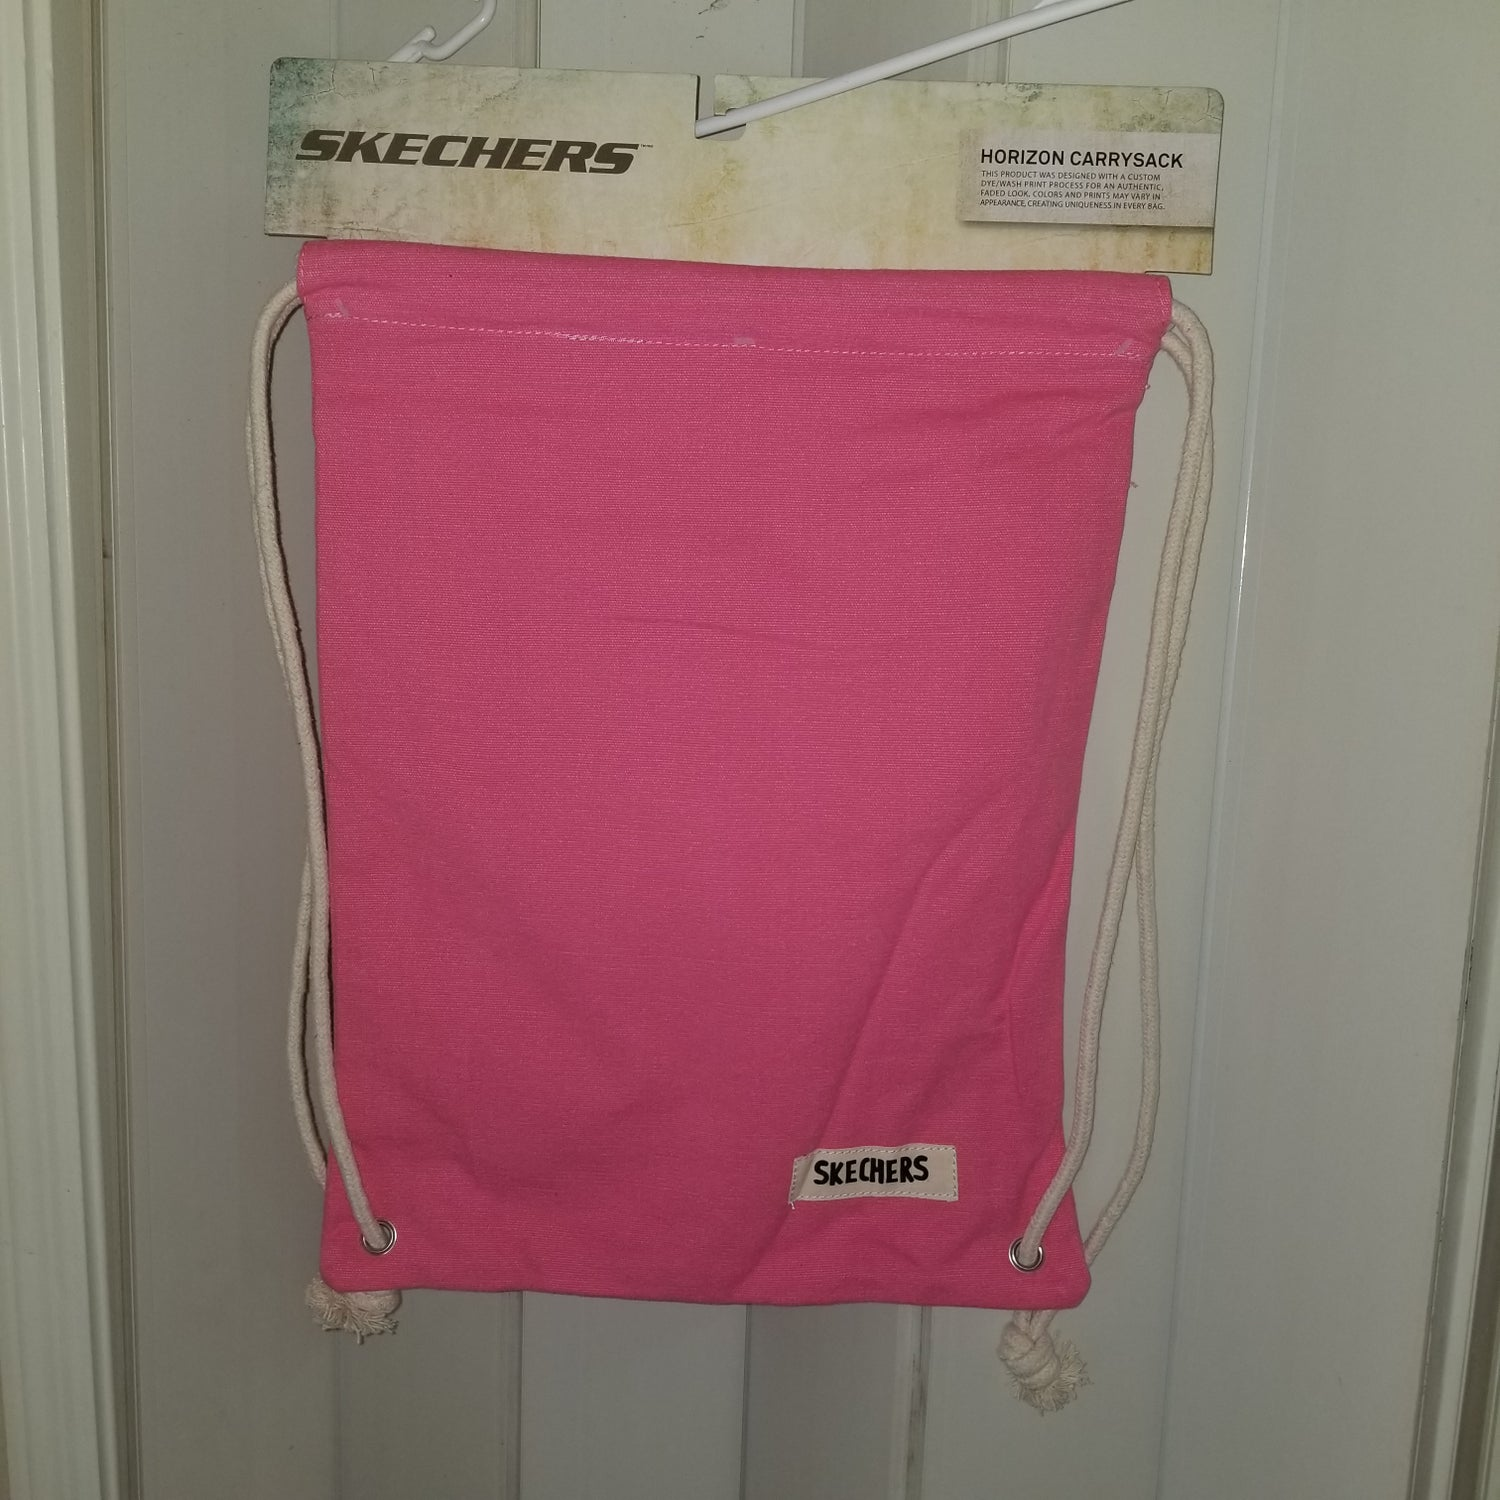 Image of Sketchers Tote Bag